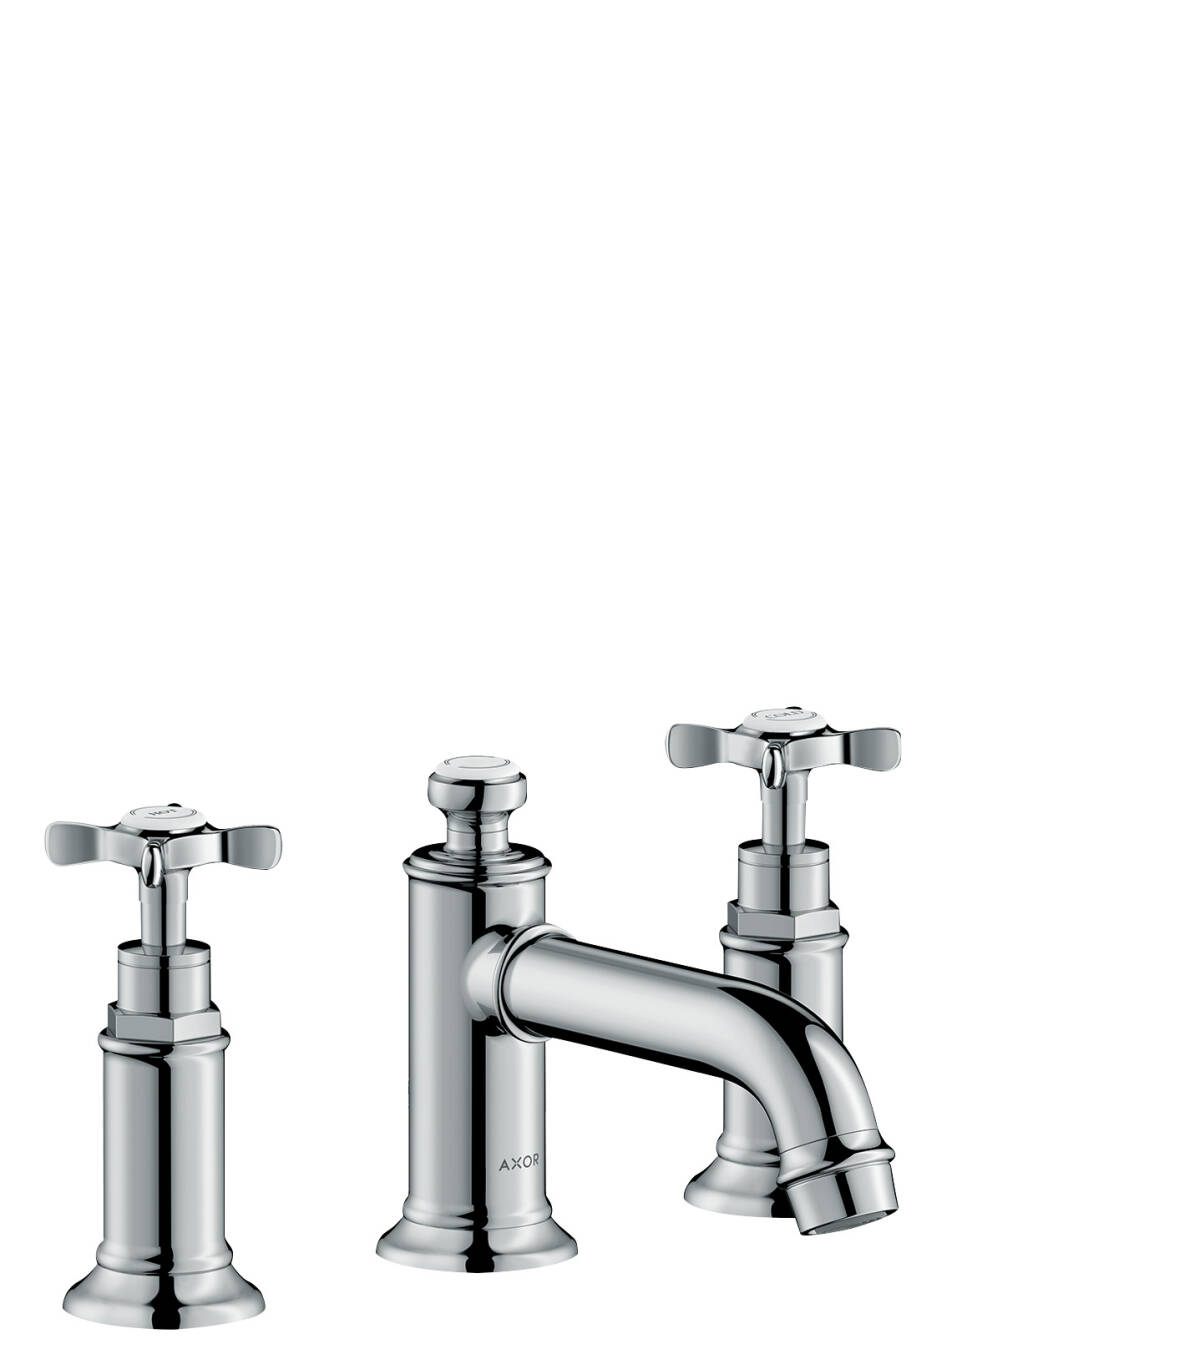 3-hole basin mixer 30 with pop-up waste set, Brushed Black Chrome, 16536340